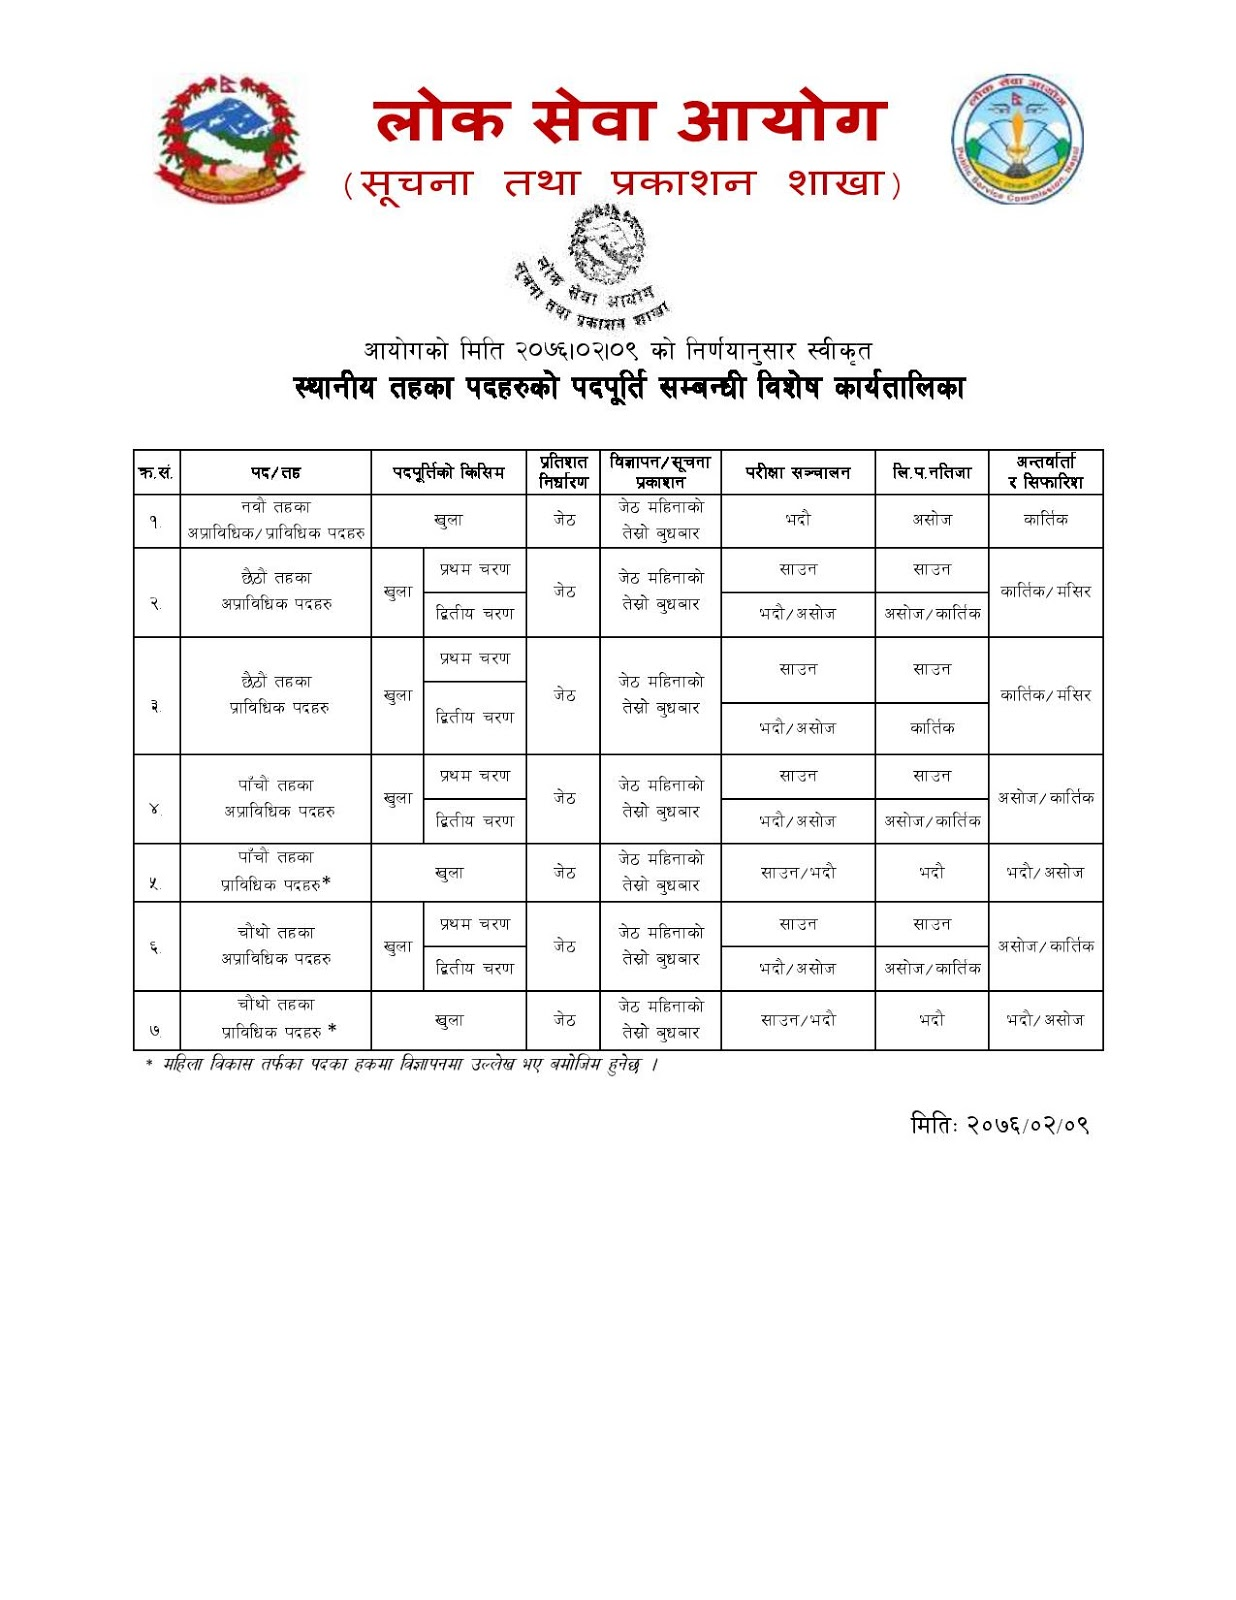 Lok Sewa Aayog New Annual Schedule Fiscal Year 066/067 offor Sangh and Sthaniya